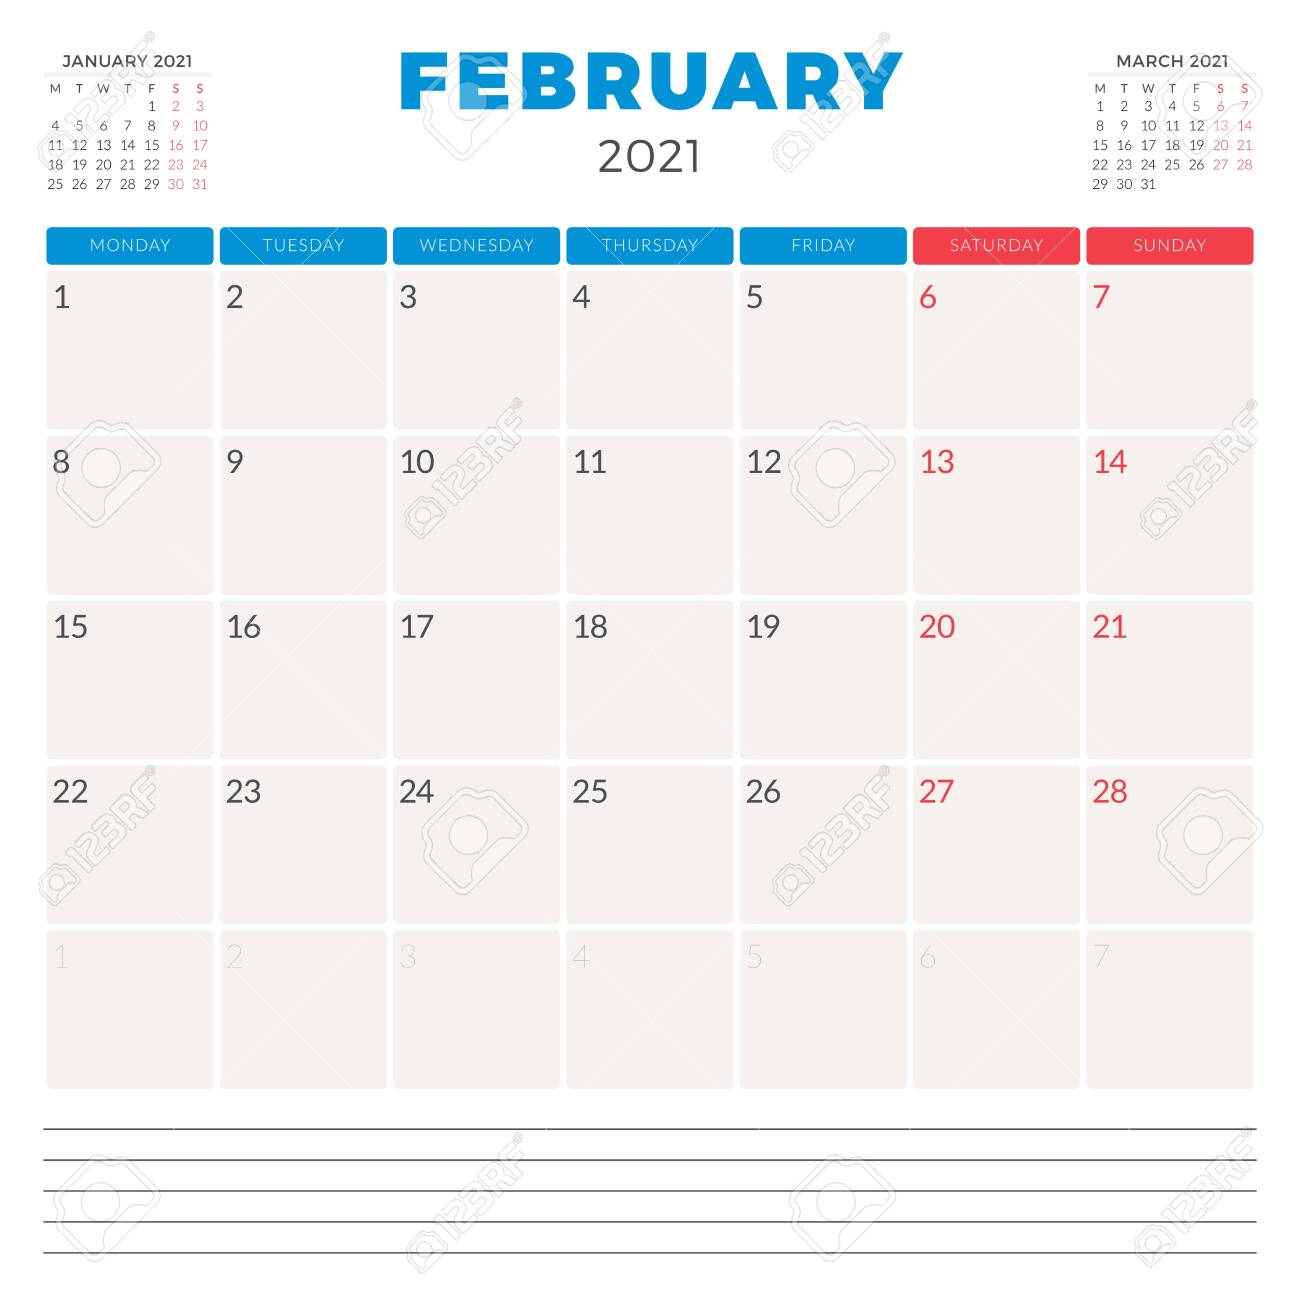 photo stock vector calendar planner for february 2021 week starts on monday printable vector stationery design template